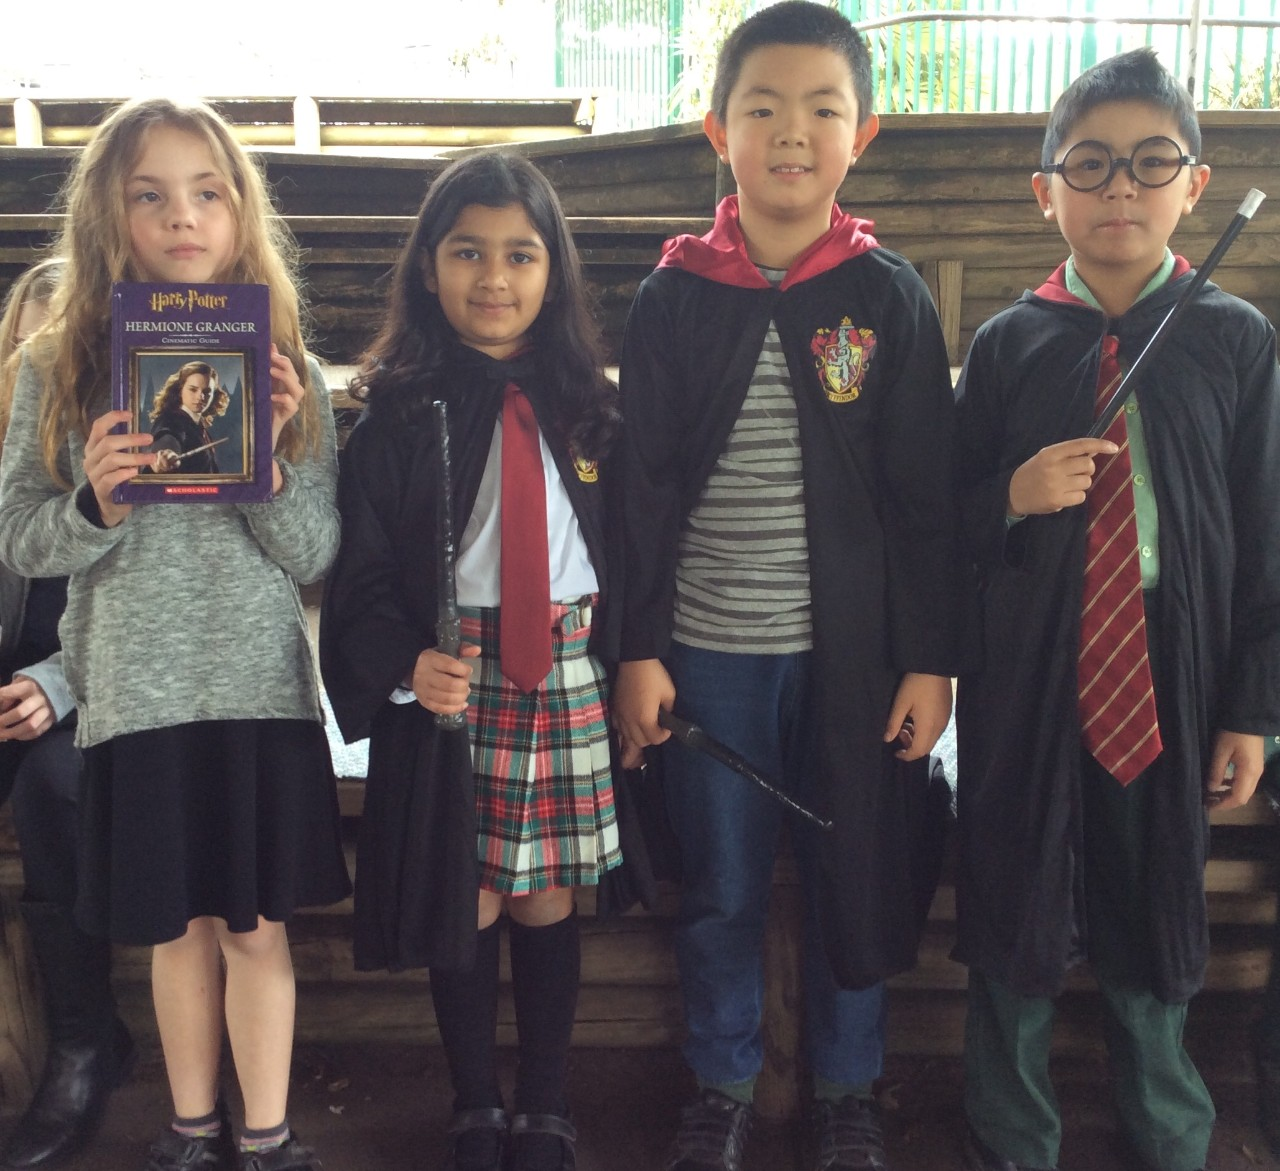 Four Year 2 students dressed in Harry Potter costumes at 2018 Book Parade